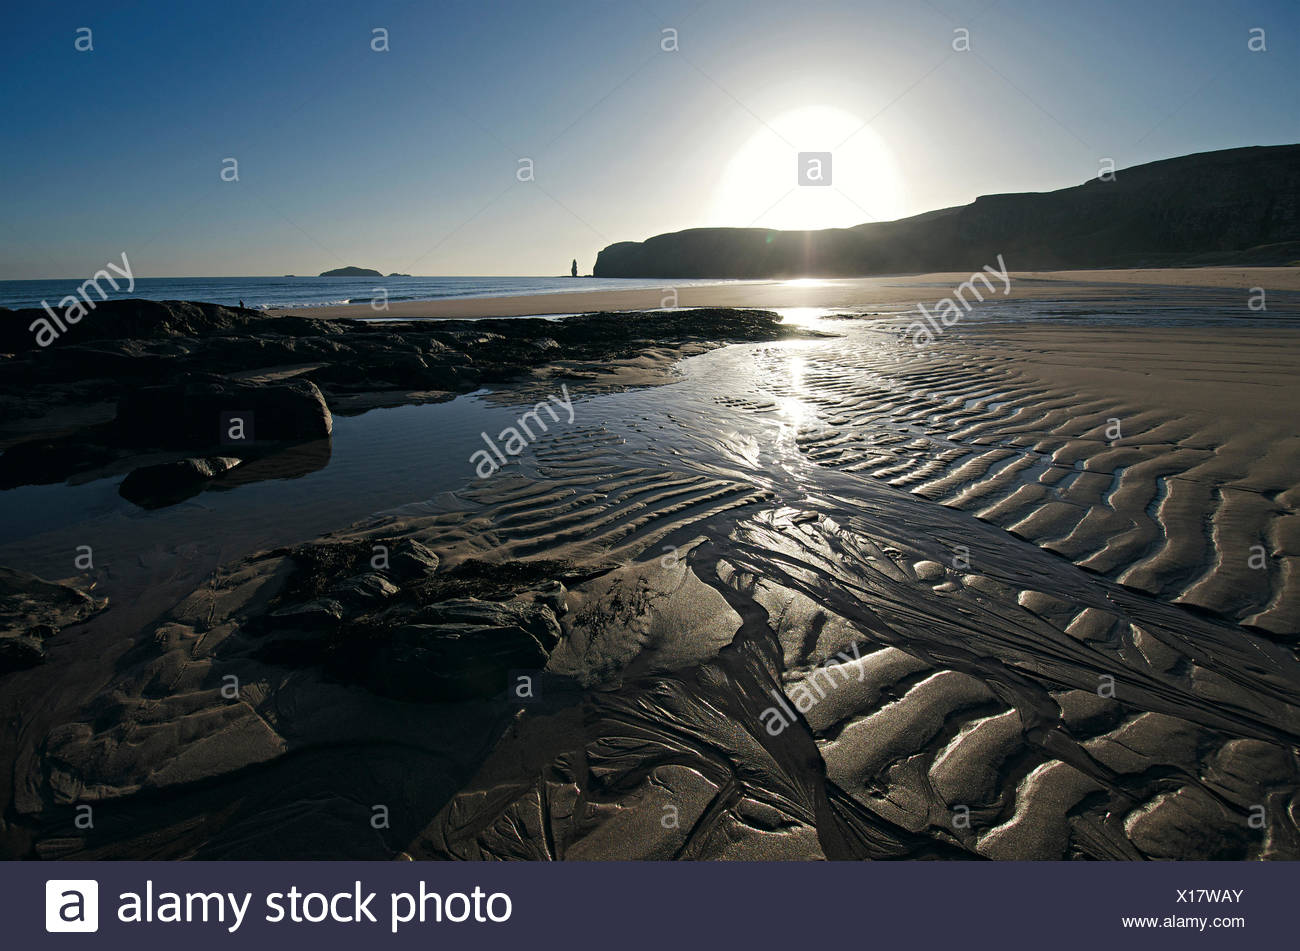 Beach of Sandwood Bay, Highlands, Scotland, Great Britain - Stock Image